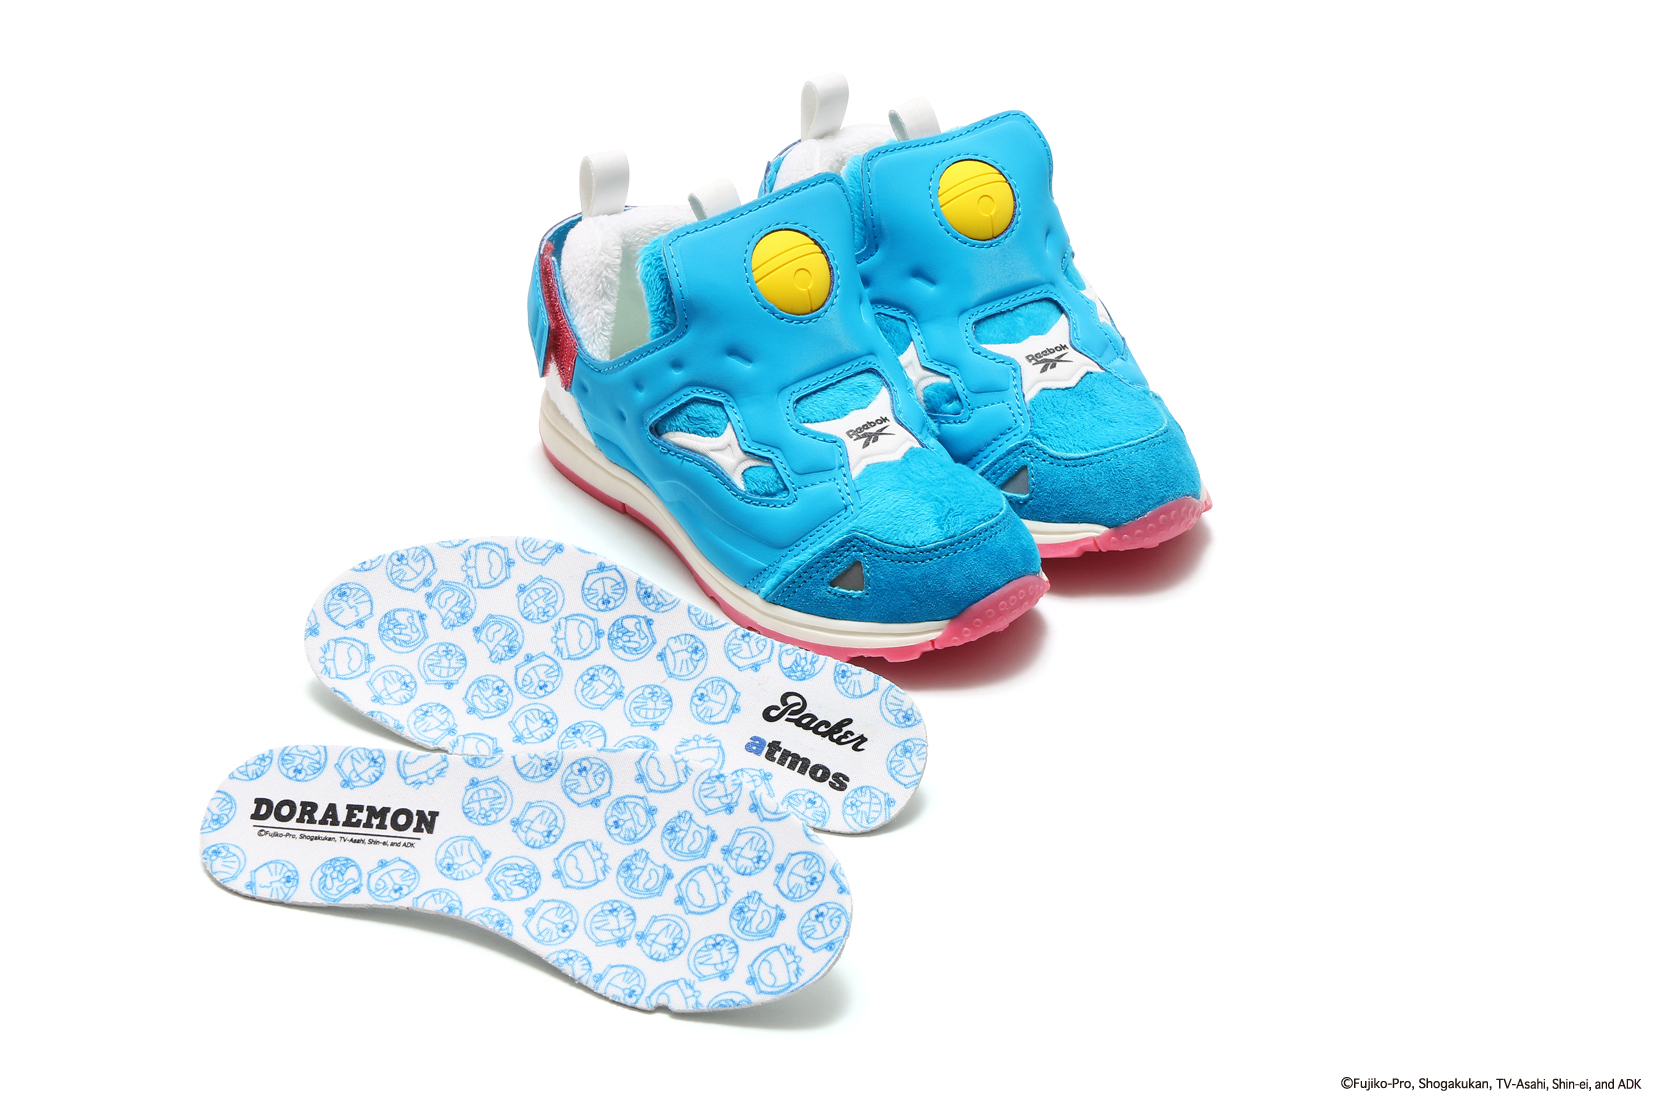 Reebok, Packer Shoes, and atmos for Doraemon Movie Release